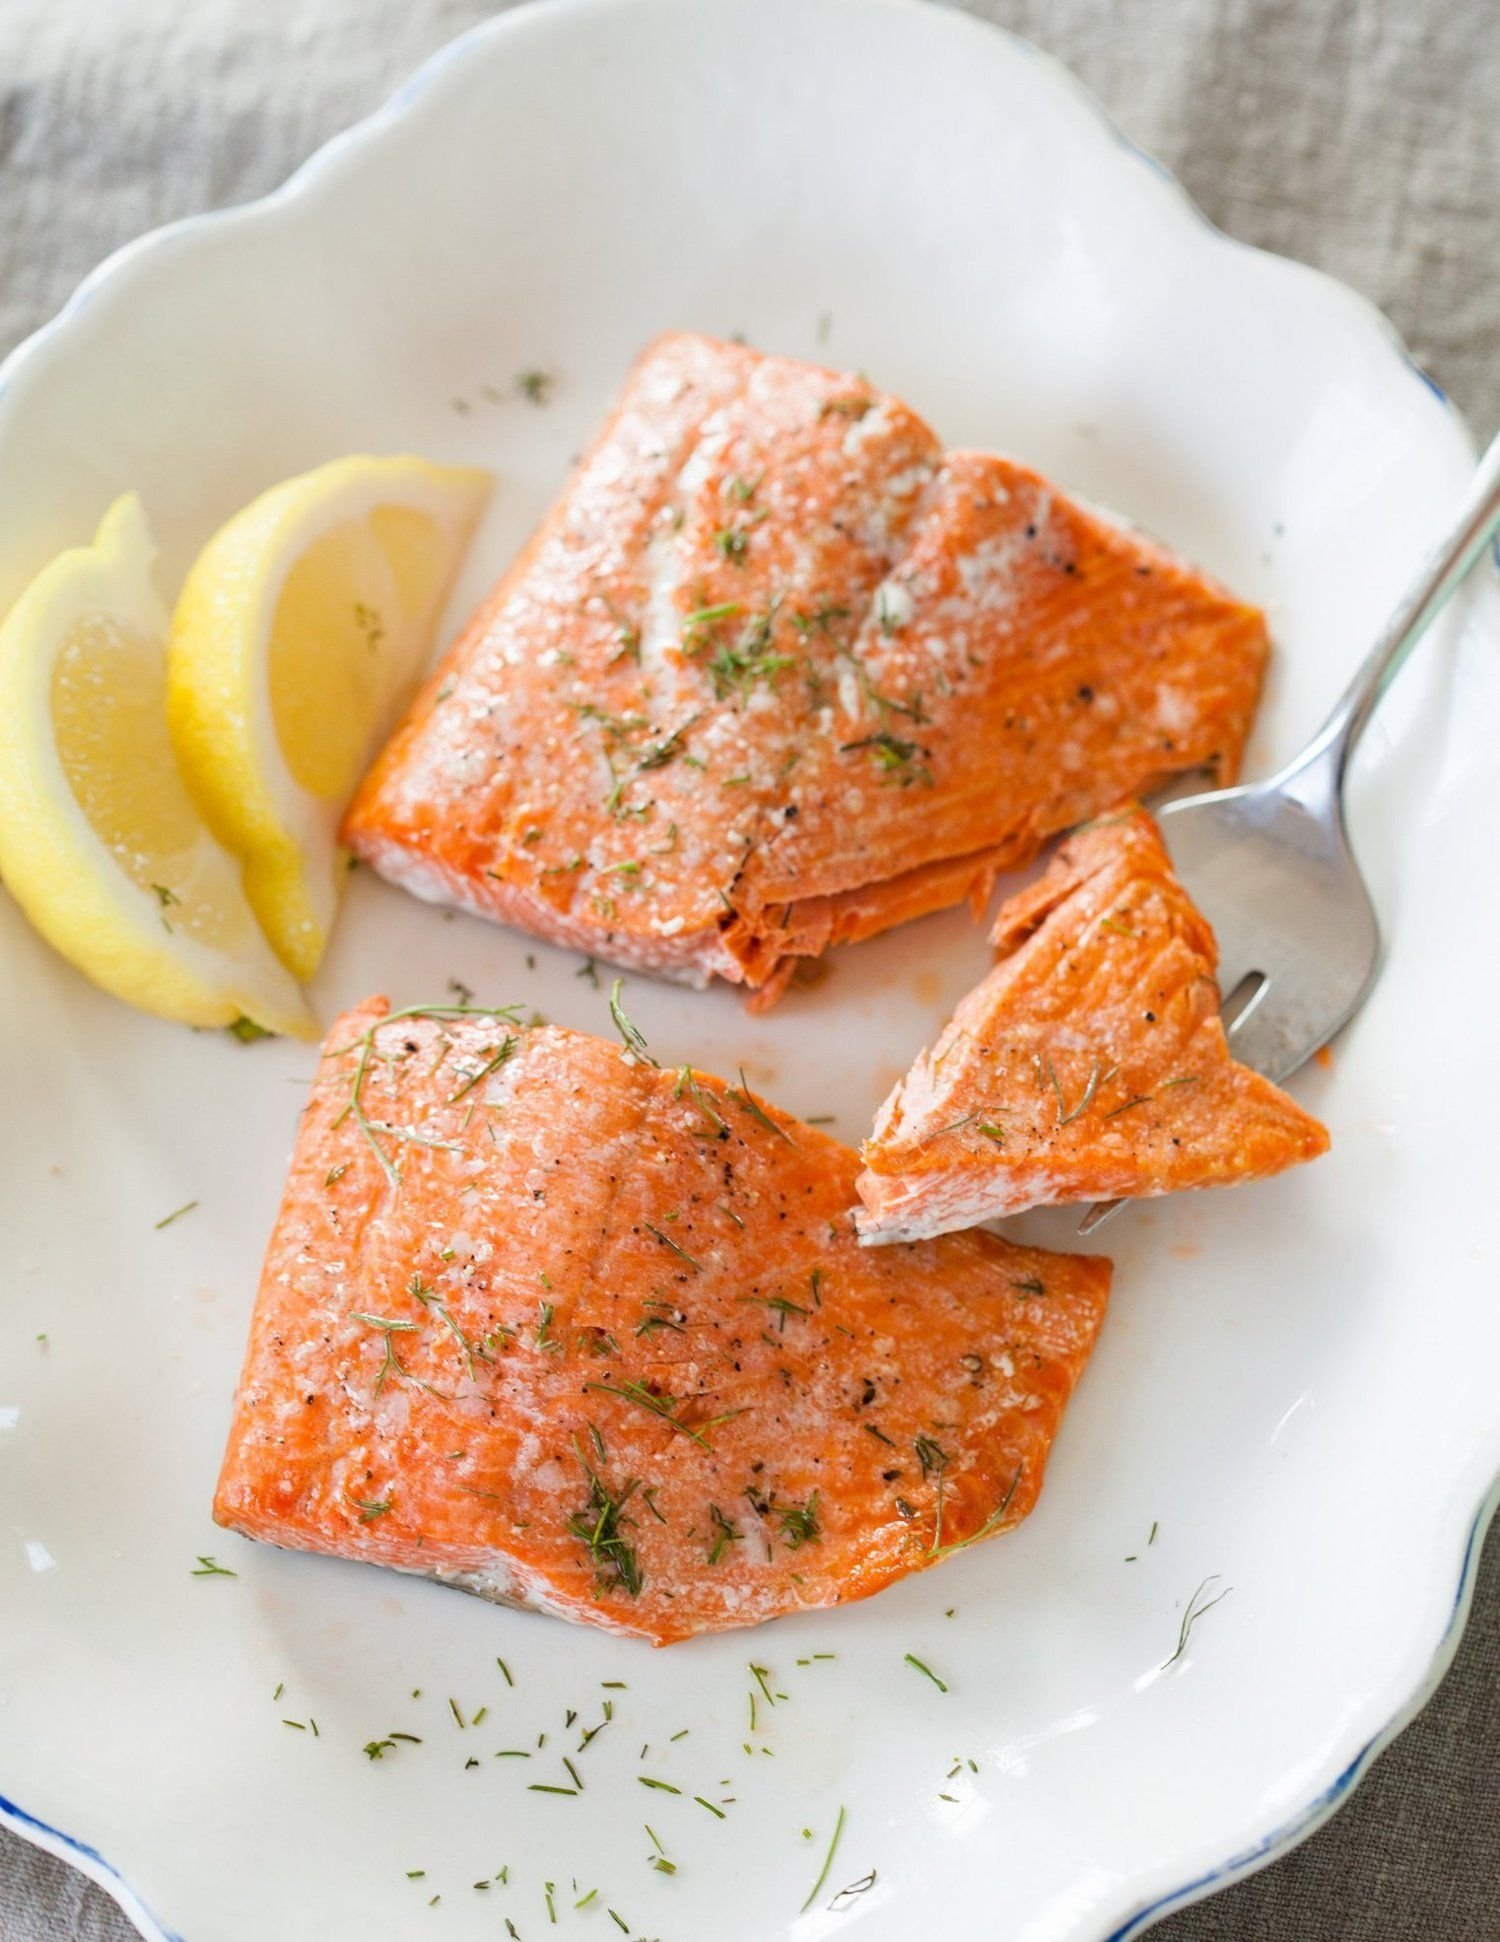 best 20 baking salmon in oven ideas on pinterest easy salmon recipes oven salmon recipes and. Black Bedroom Furniture Sets. Home Design Ideas